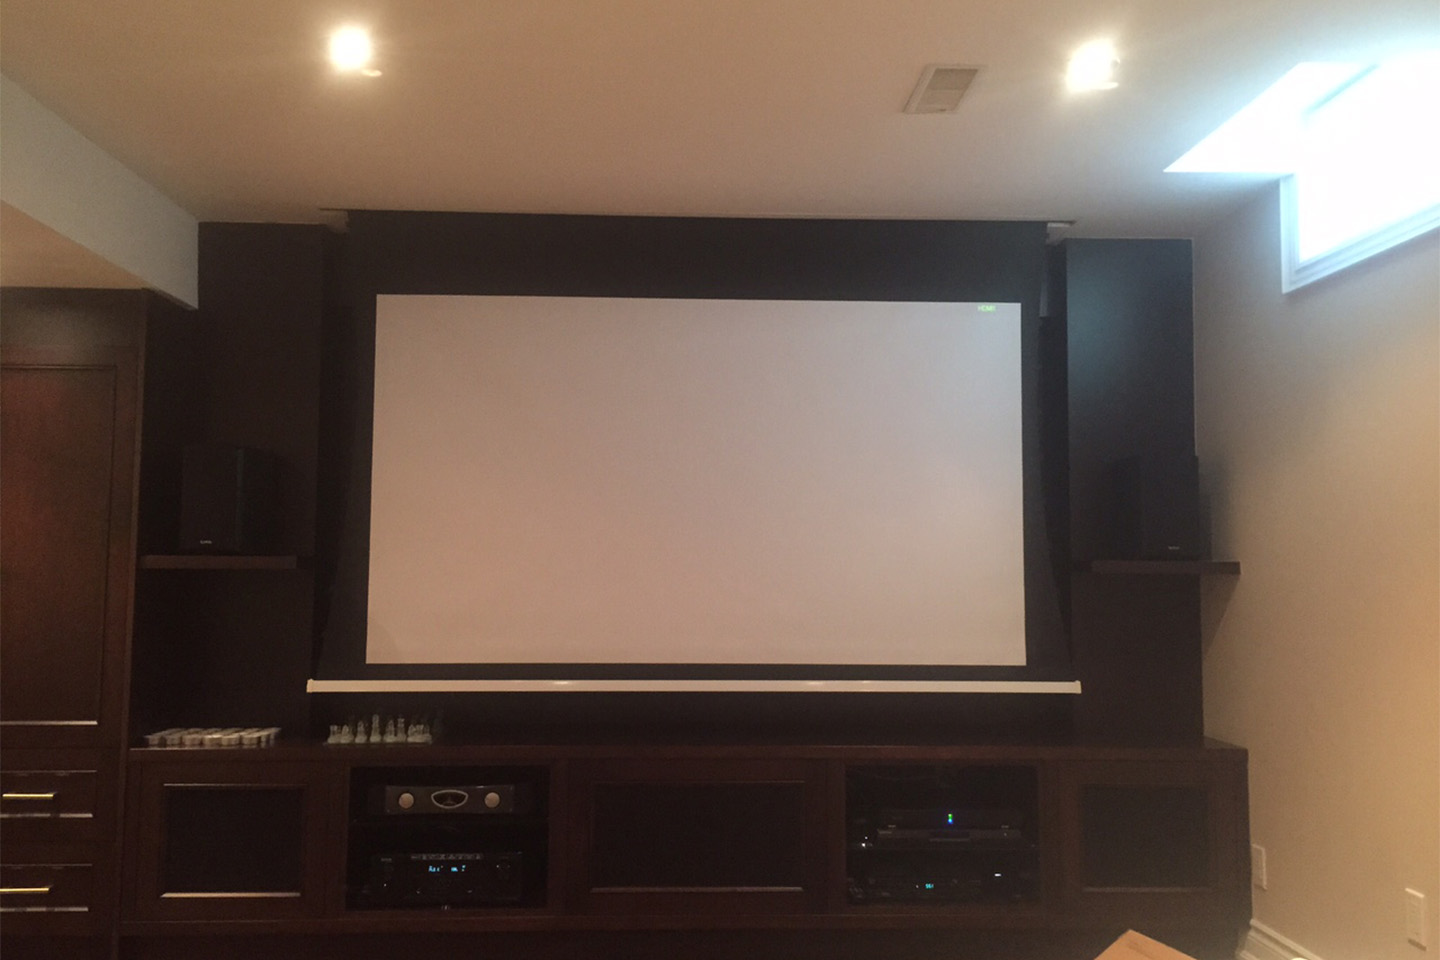 4. Projection Screen Drops Down in Front of TV